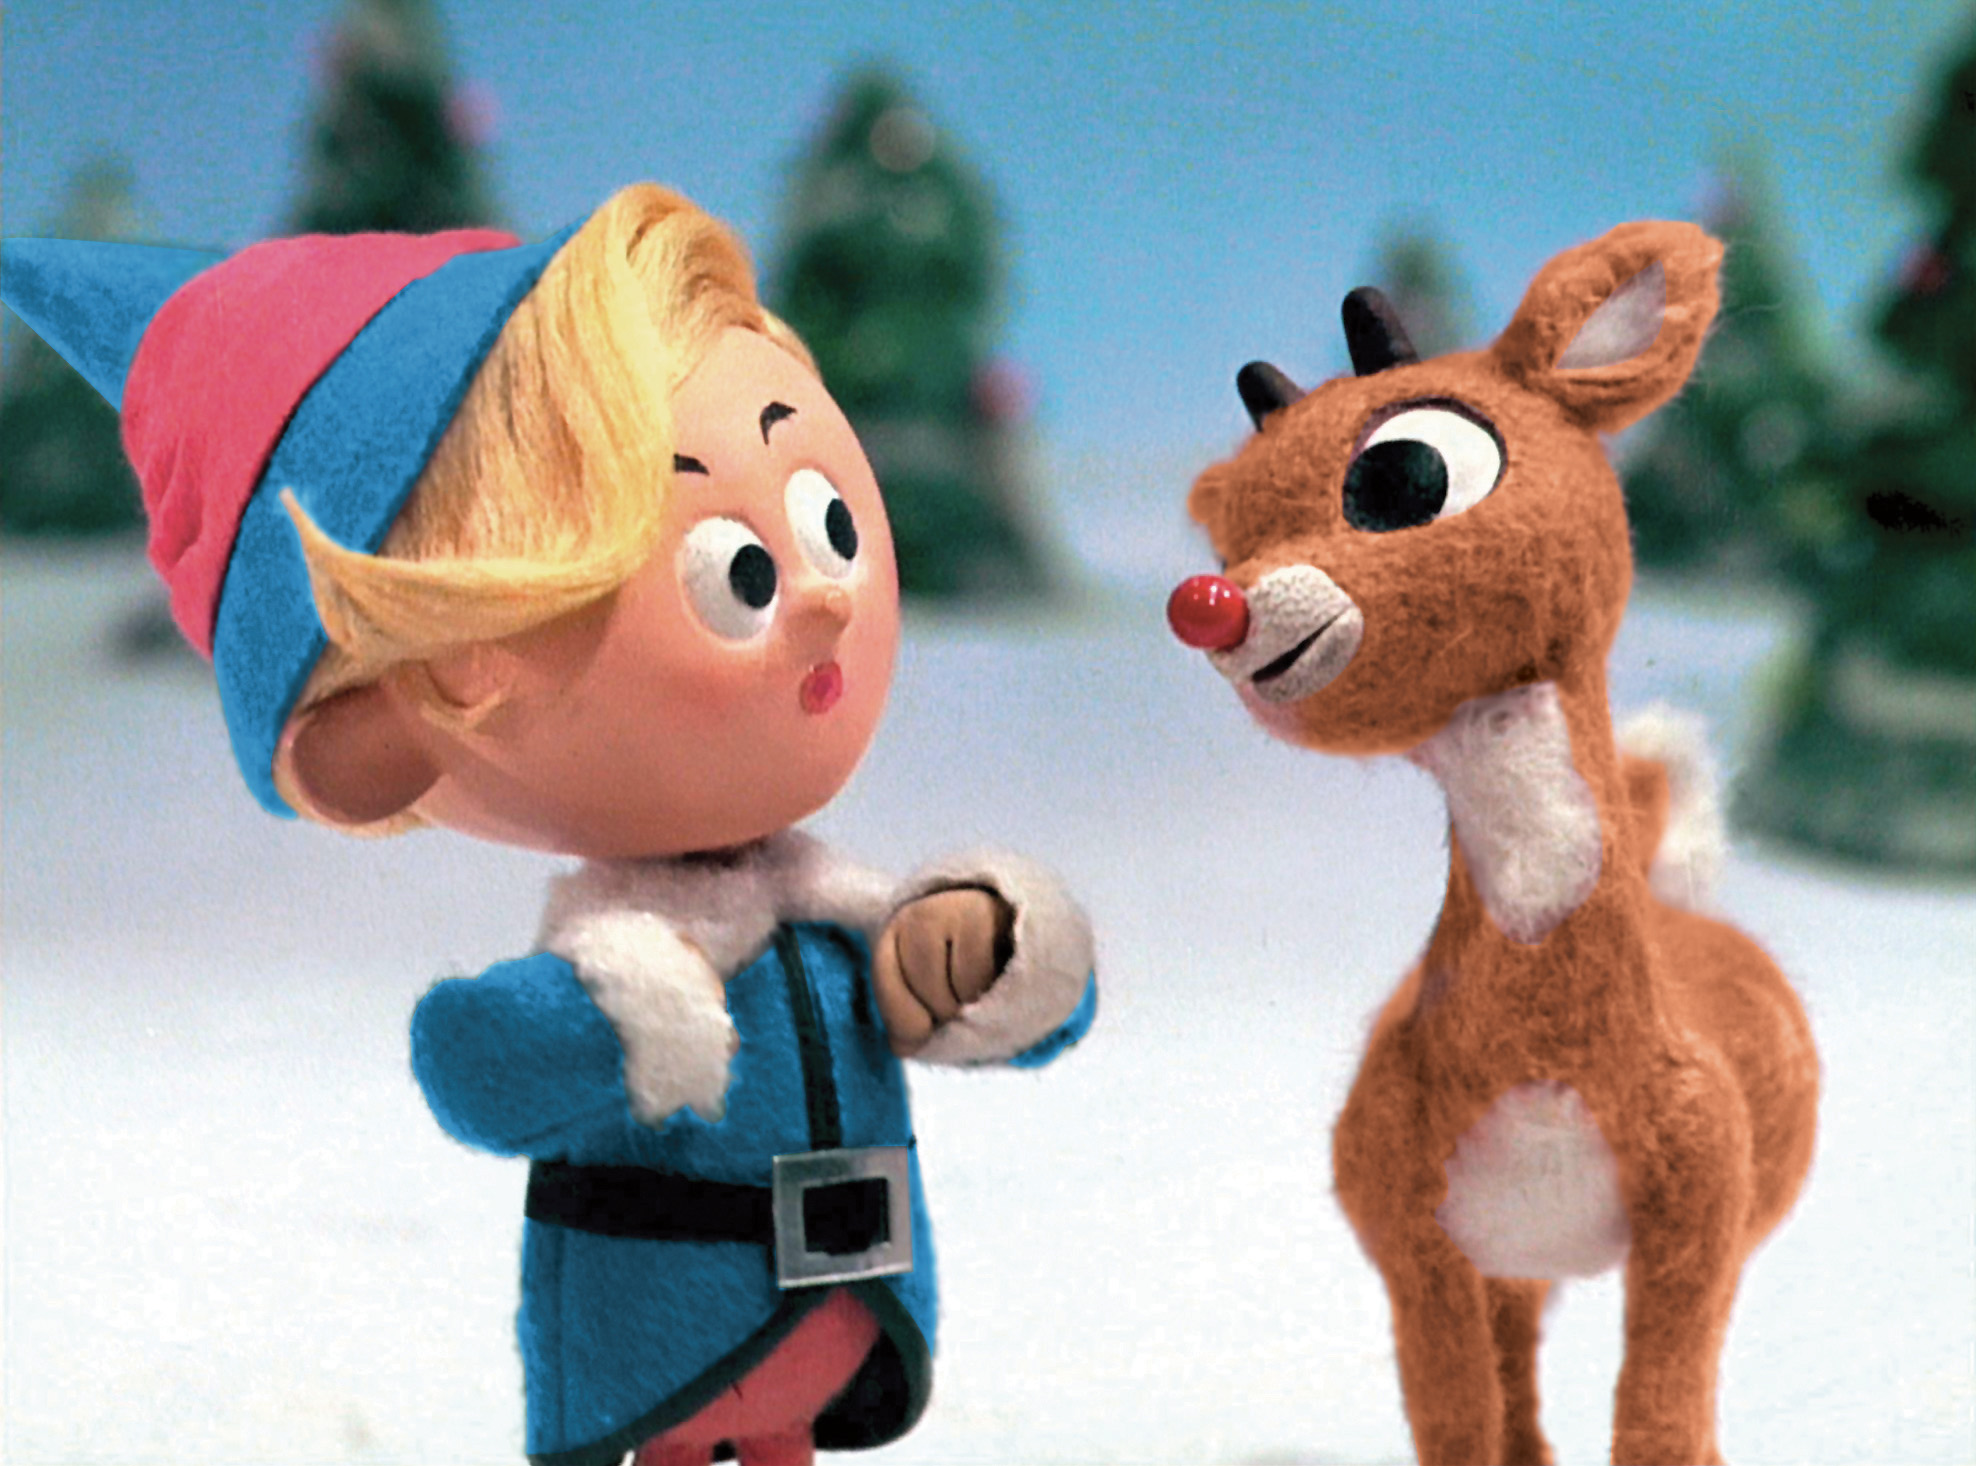 Rudolph the Red-nosed Reindeer and his friend